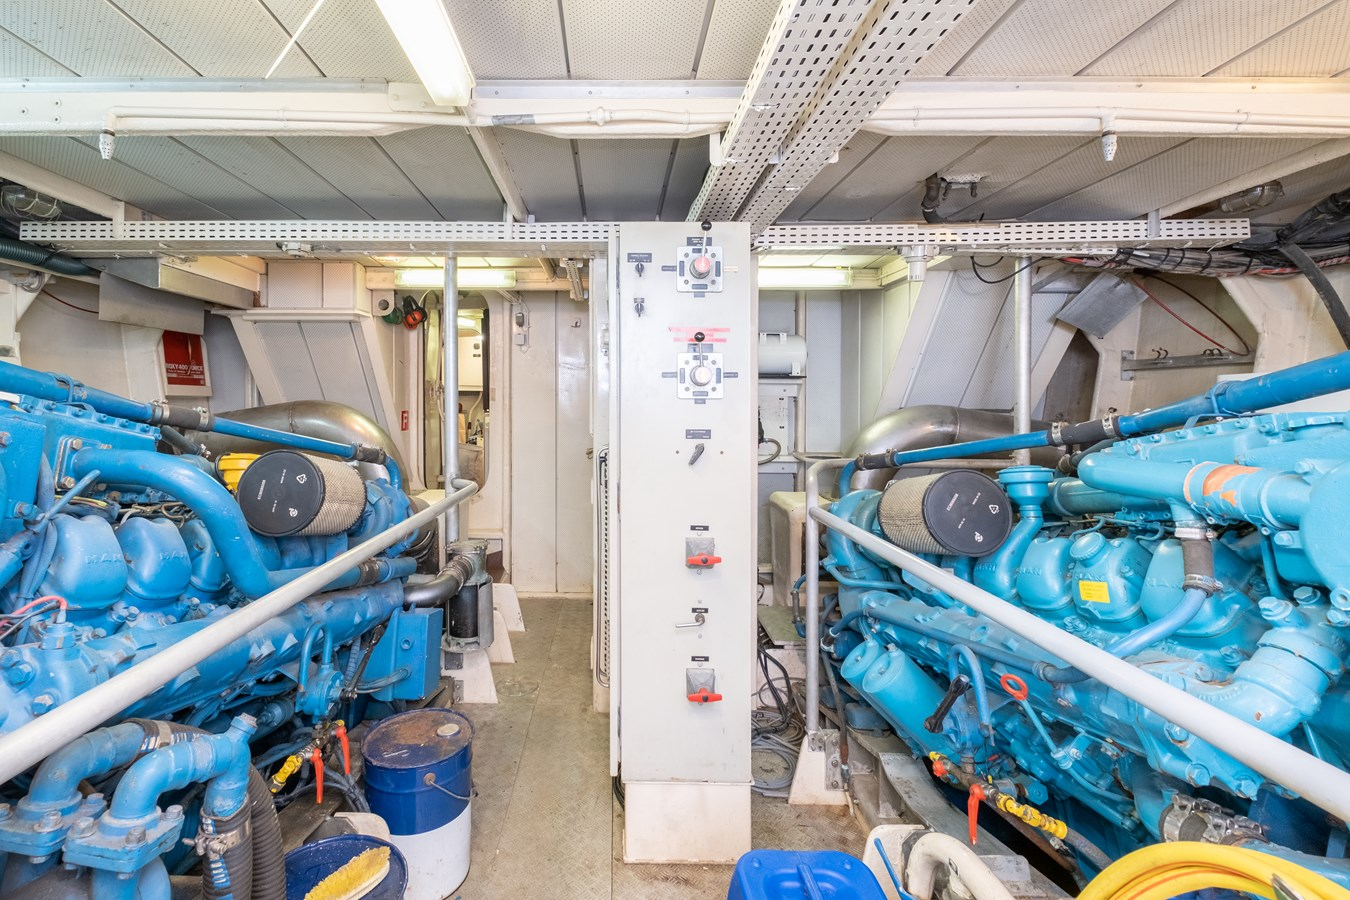 Guy Couach 2701 TIENNA - Engine Room 1991 GUY COUACH 2701 Motor Yacht 2680663